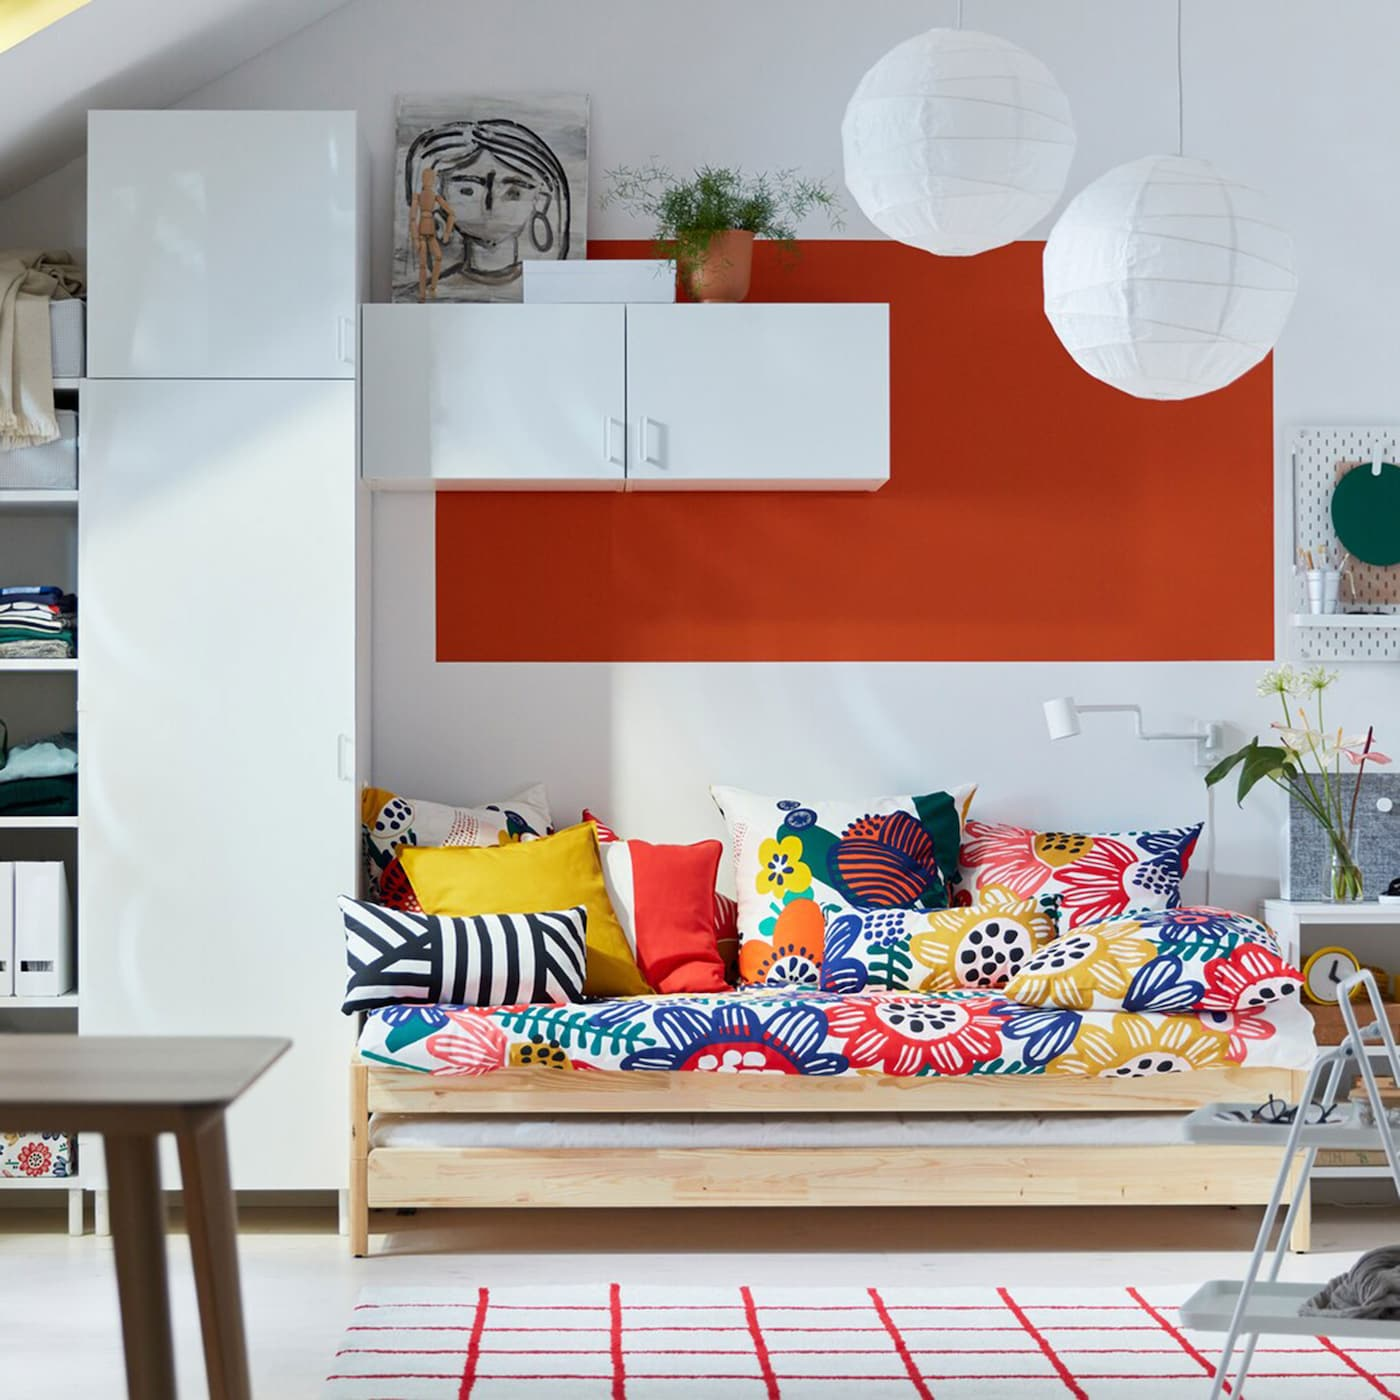 A white bedroom with IKEA PLATSA wardrobe solution and SOMMARASTER colourful flower patterned bedsheets.